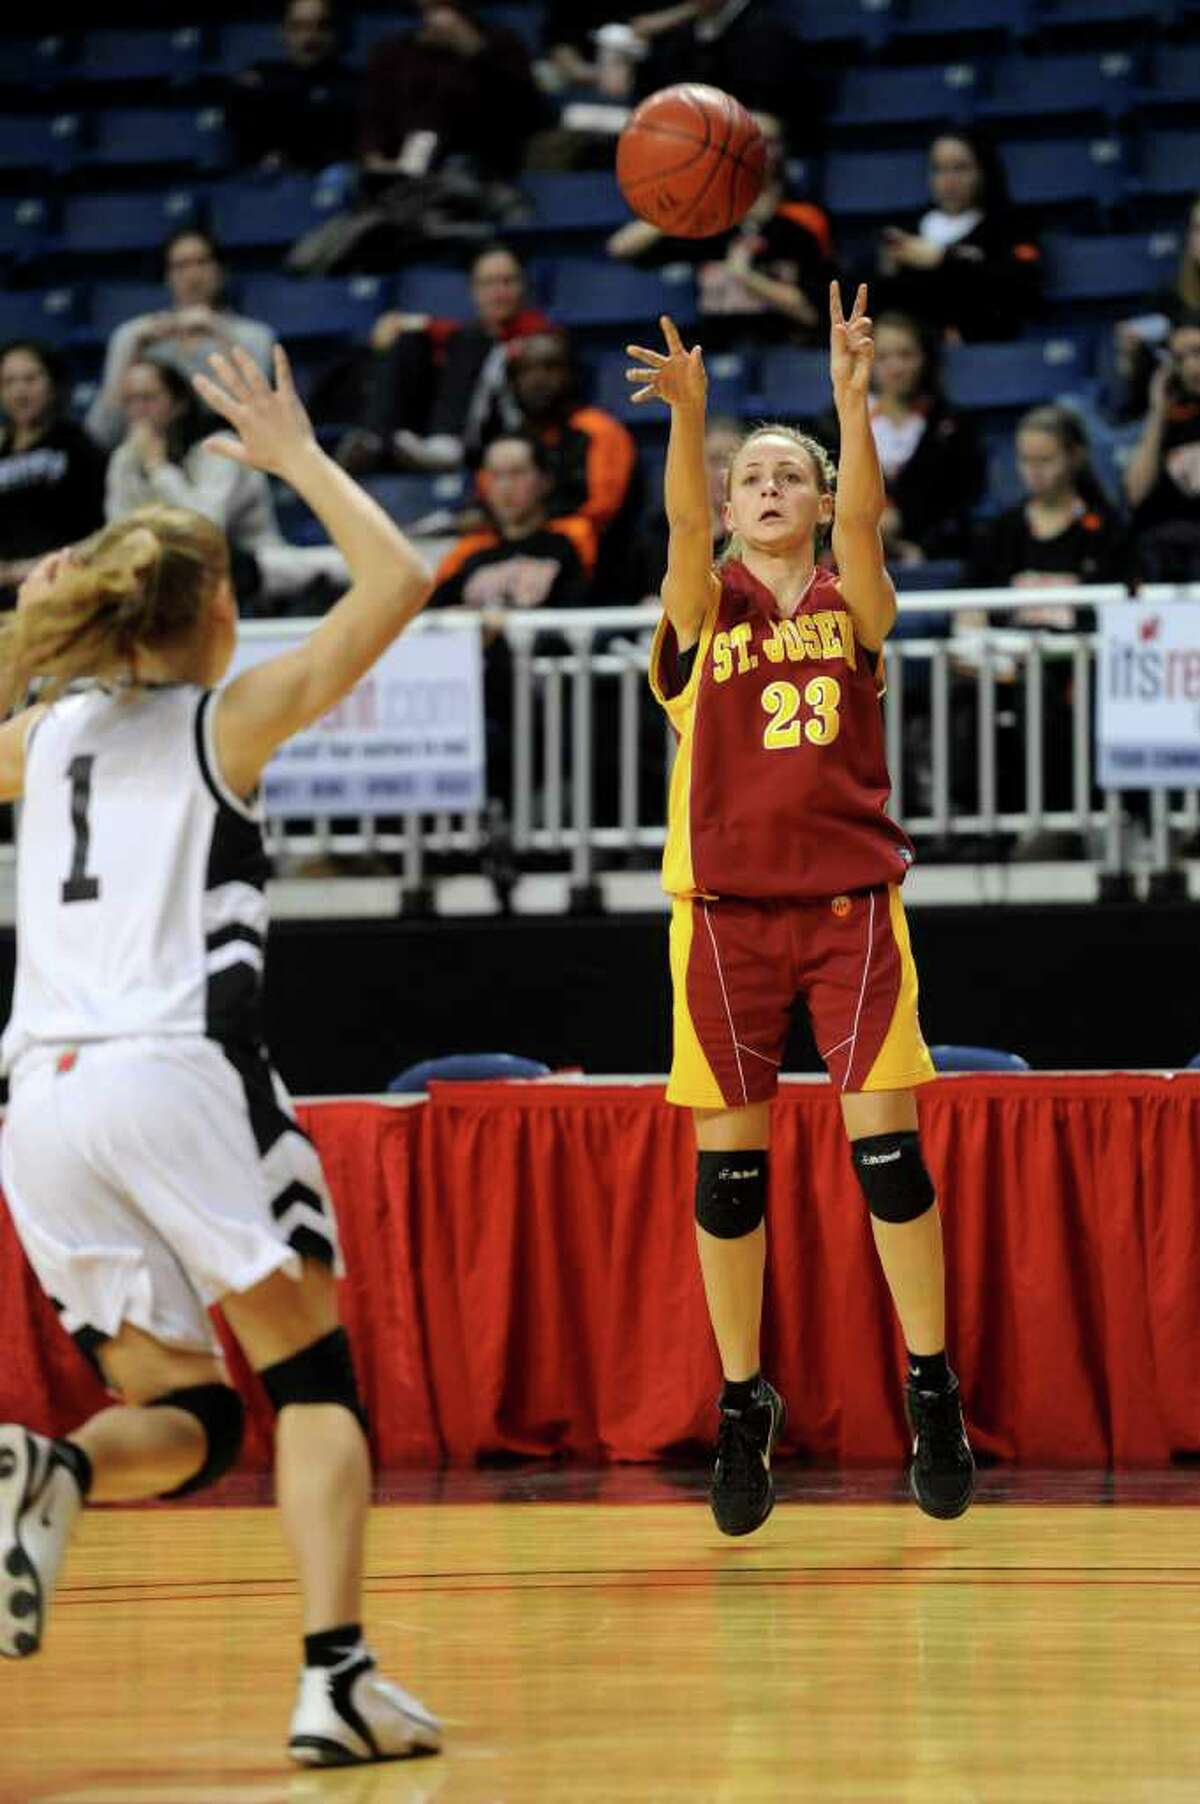 St. Joseph's Taylor Whiting takes a shot during Tuesday's FCIAC girls basketball semifinal game at the Webster Bank Arena at Harbor Yard on Feburary 22, 2011.